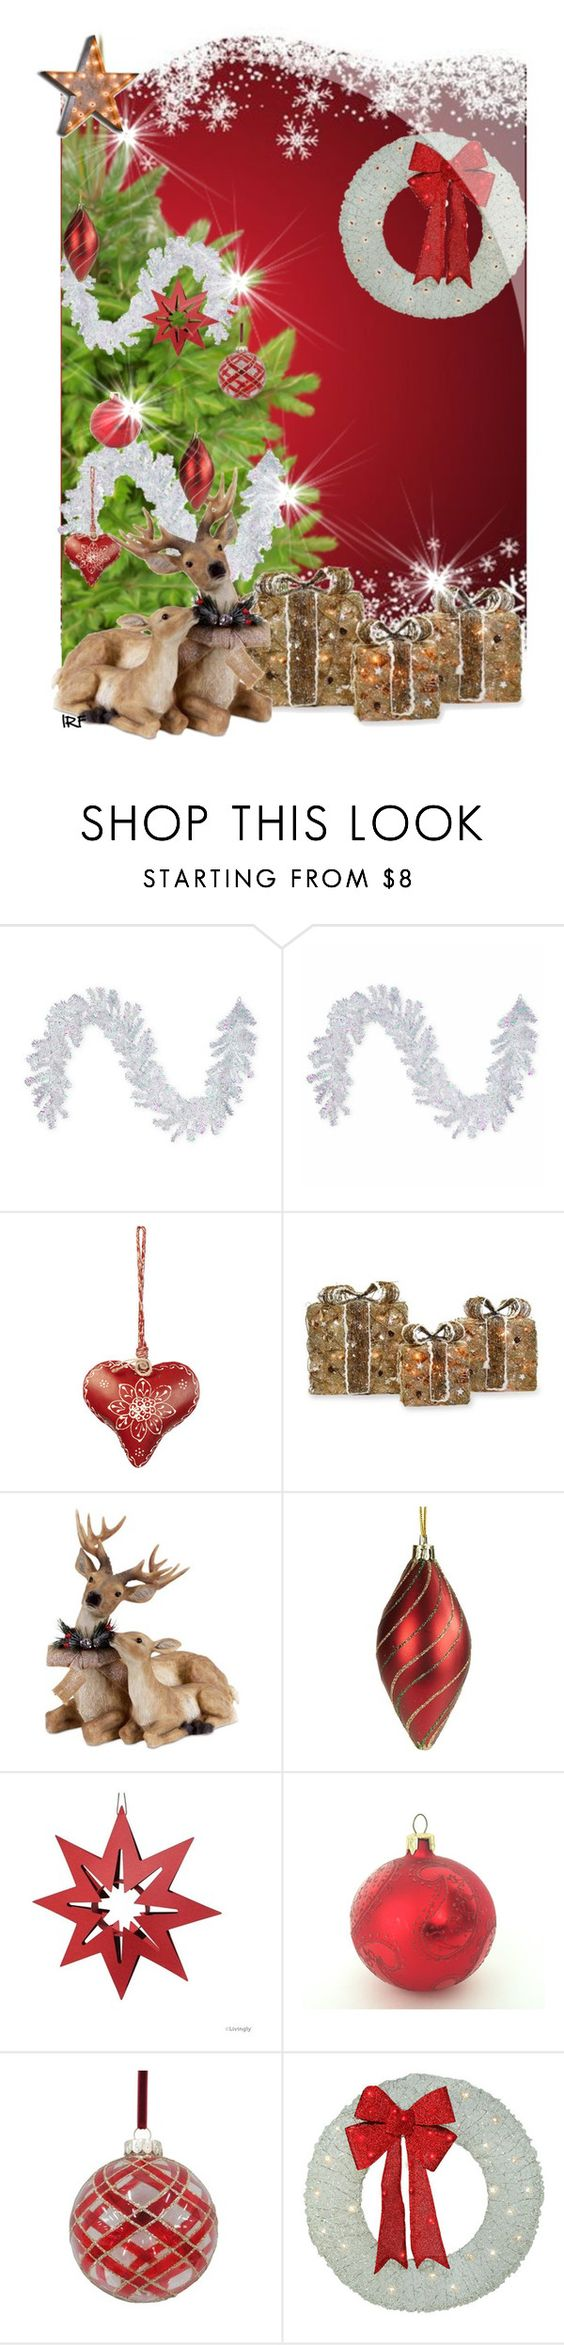 """""""Xmas tree :: 061216"""" by irafra ❤ liked on Polyvore featuring interior, interiors, interior design, home, home decor, interior decorating, Home Decorators Collection, Amara, Shea's Wildflower Company and GlucksteinHome"""